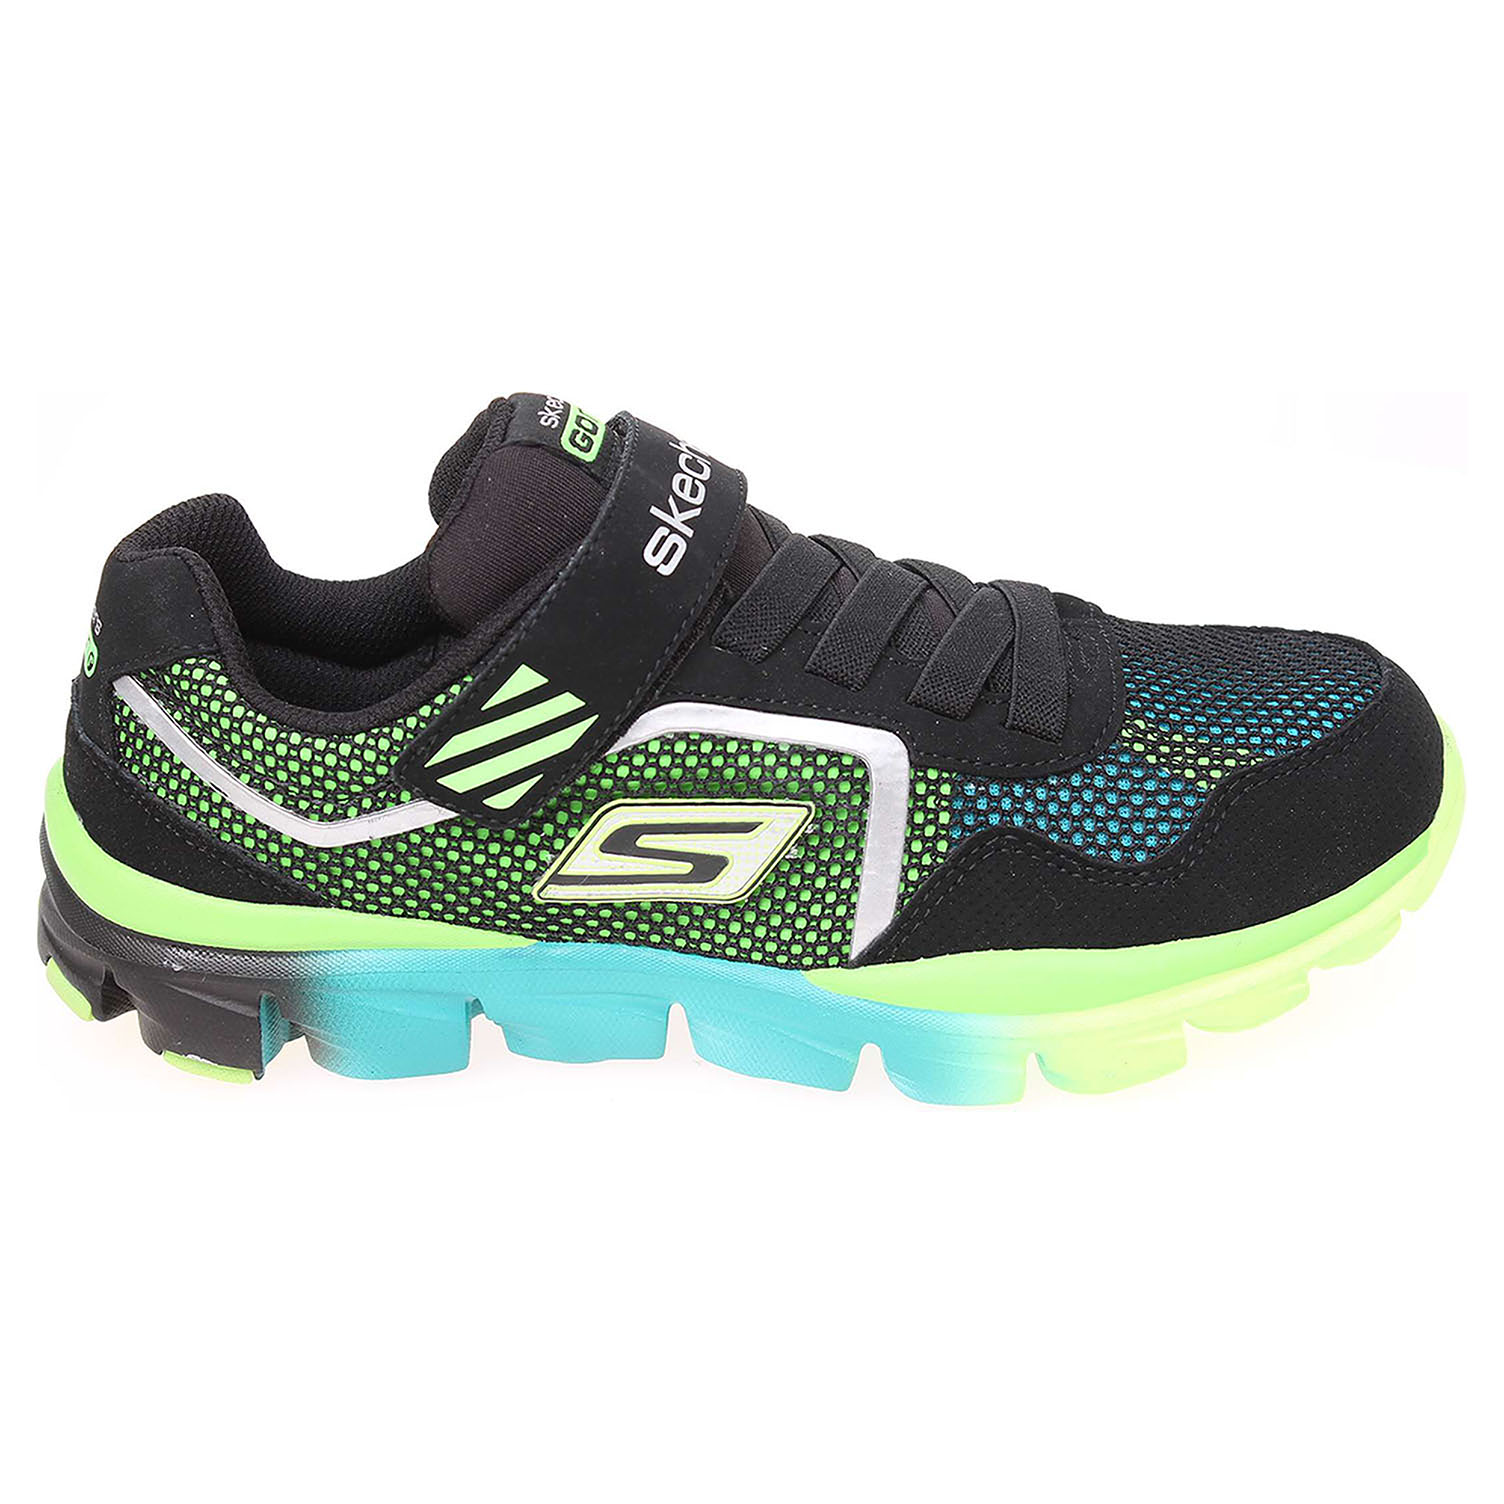 Skechers Lil Rider black-lime